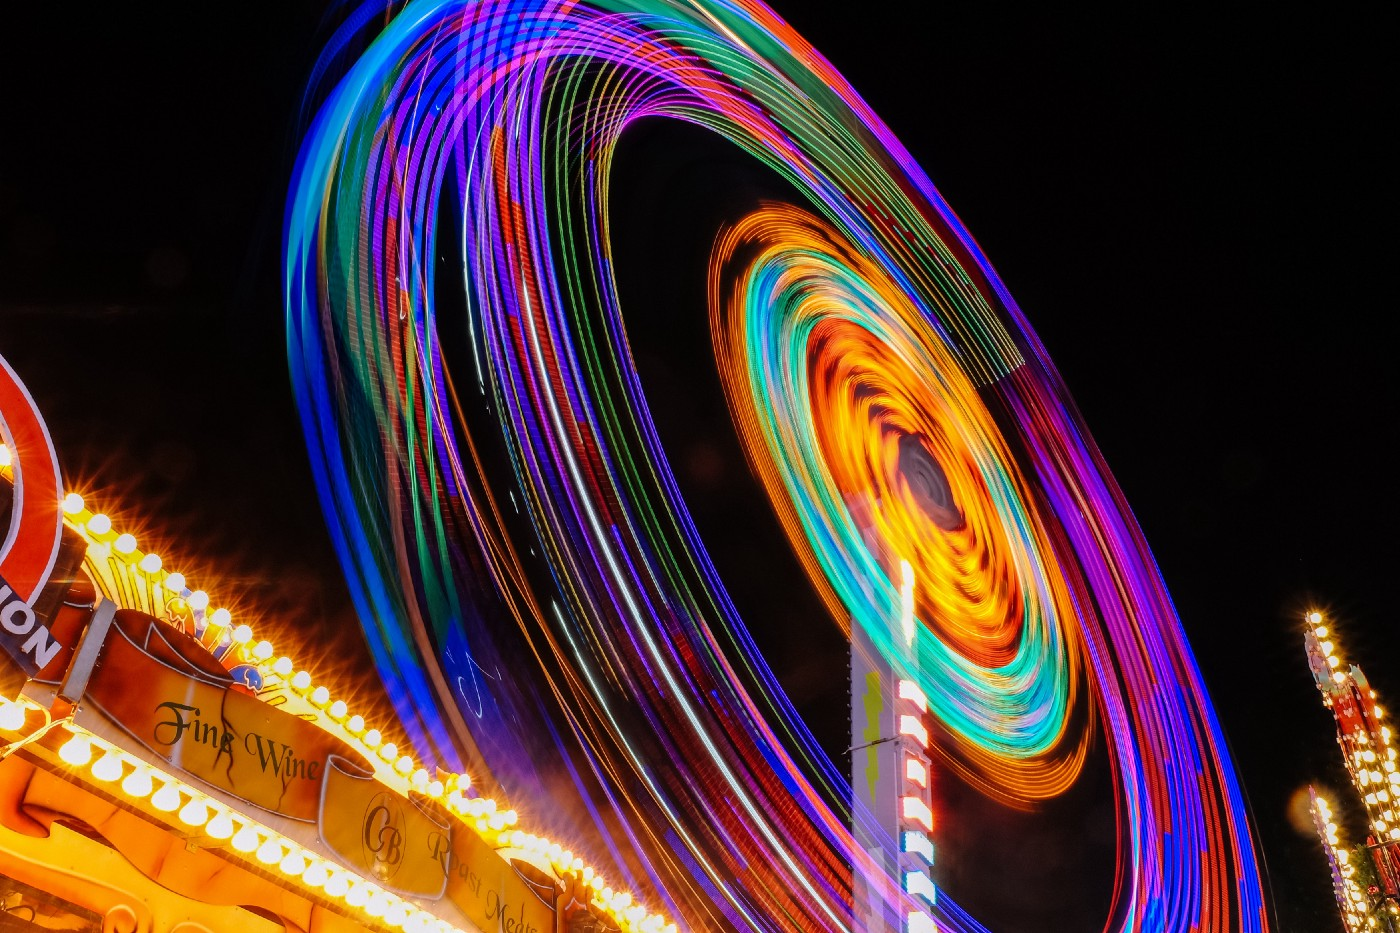 Image of an amusement park ride at night.